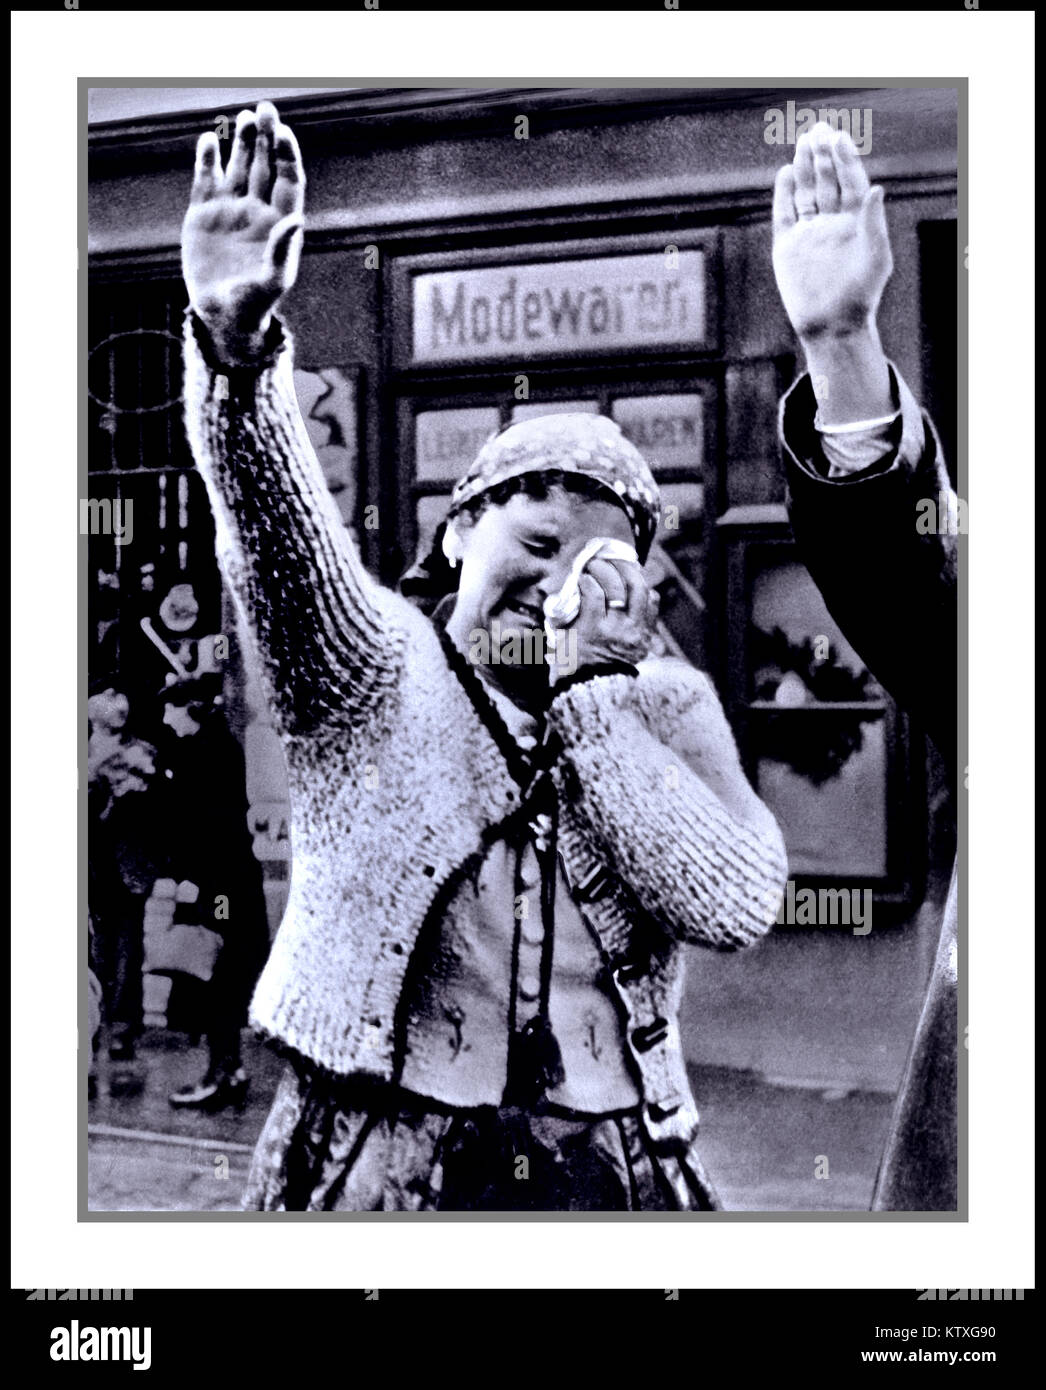 Woman in the Sudetenland weeping upon the annexation (or 'Sudeten Anschluss') of the territory to Nazi Germany. - Stock Image